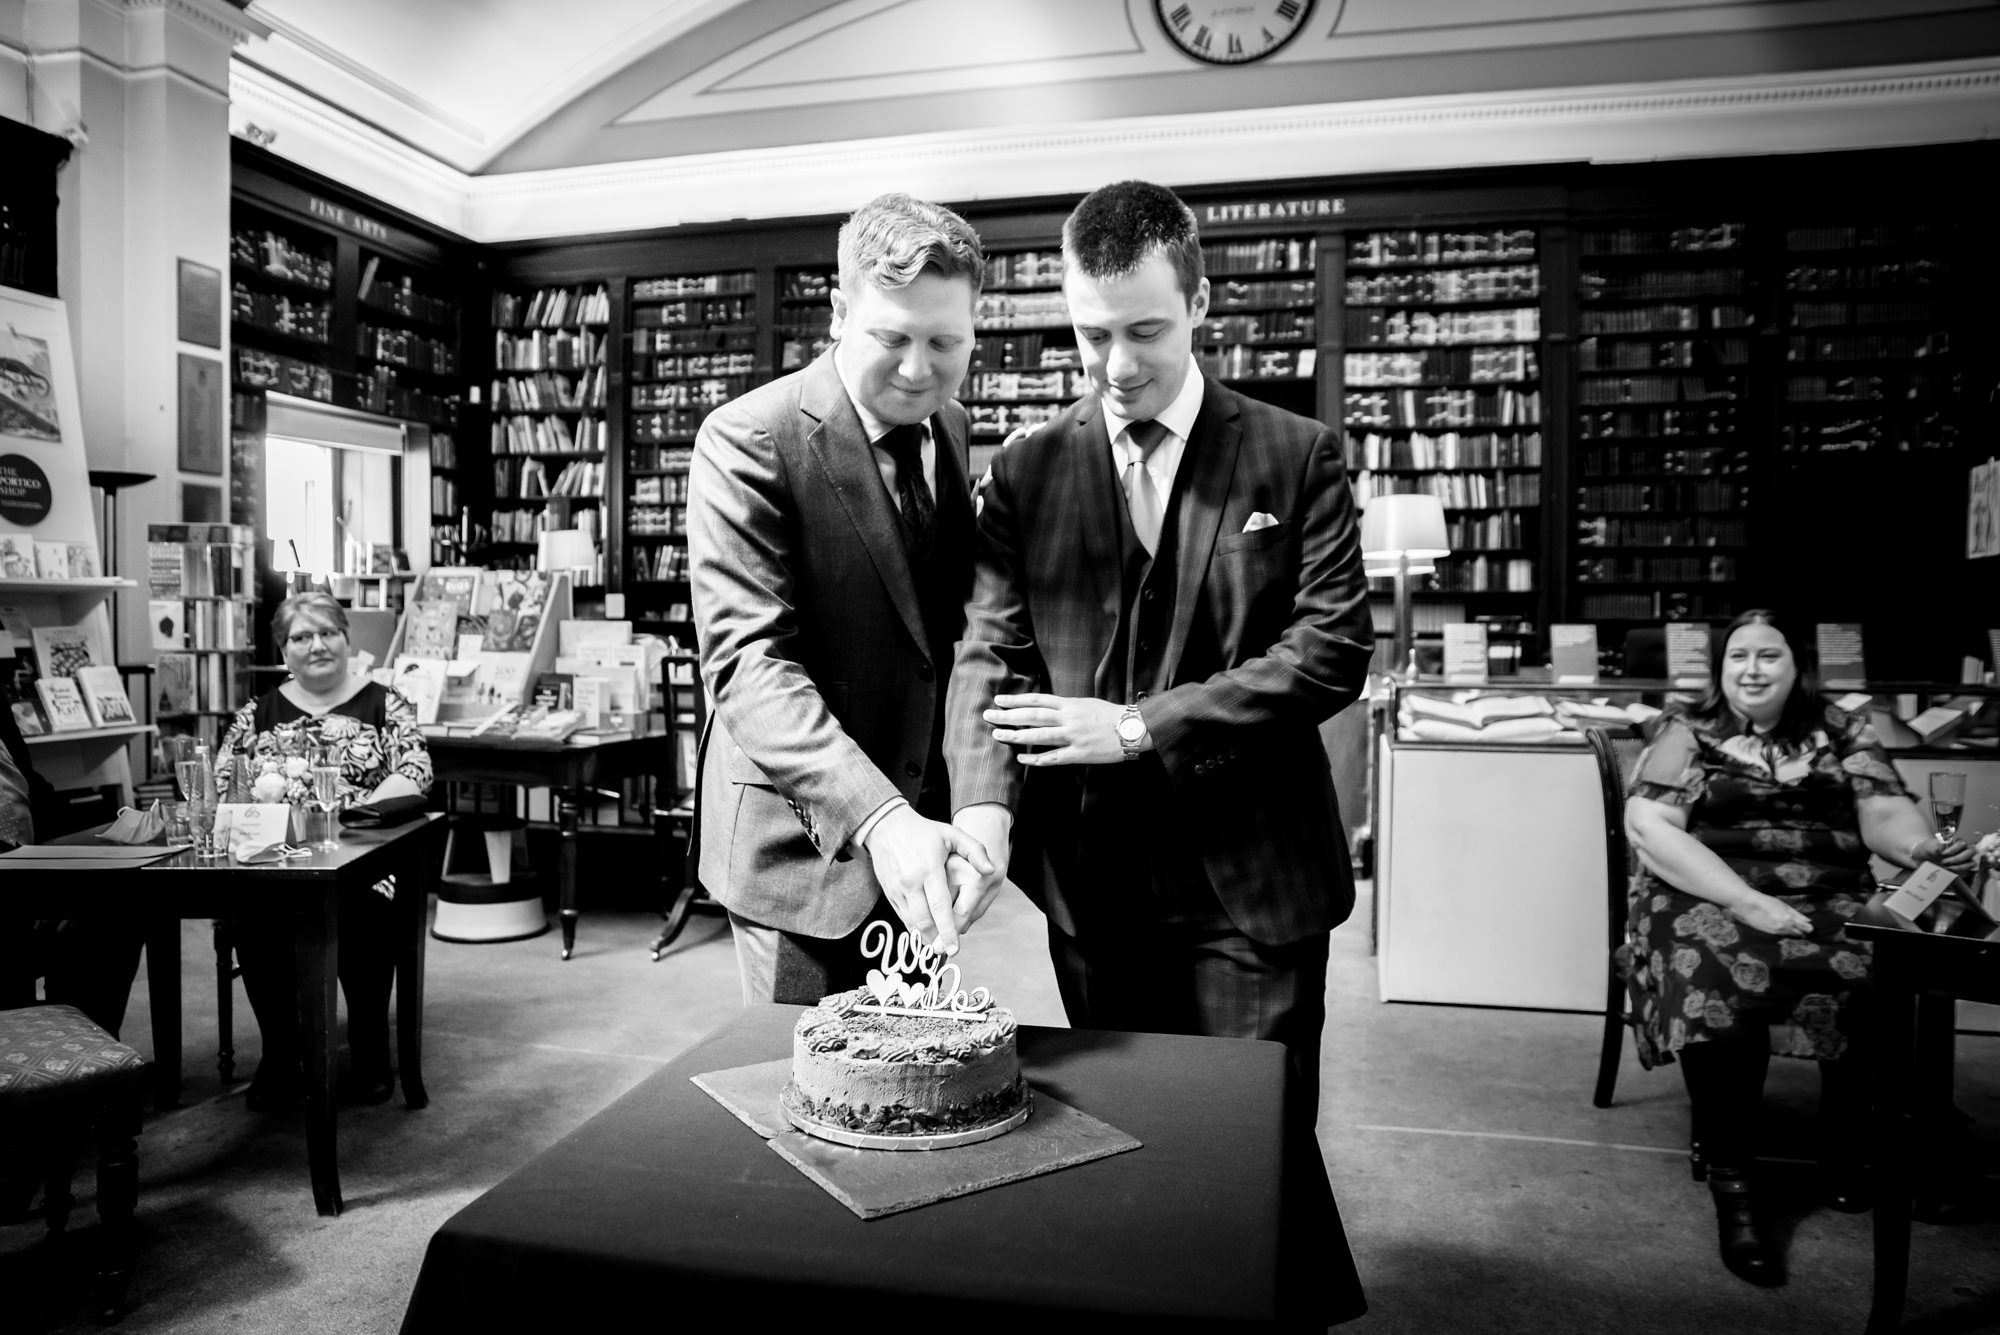 Cutting the cake at The Portico Library